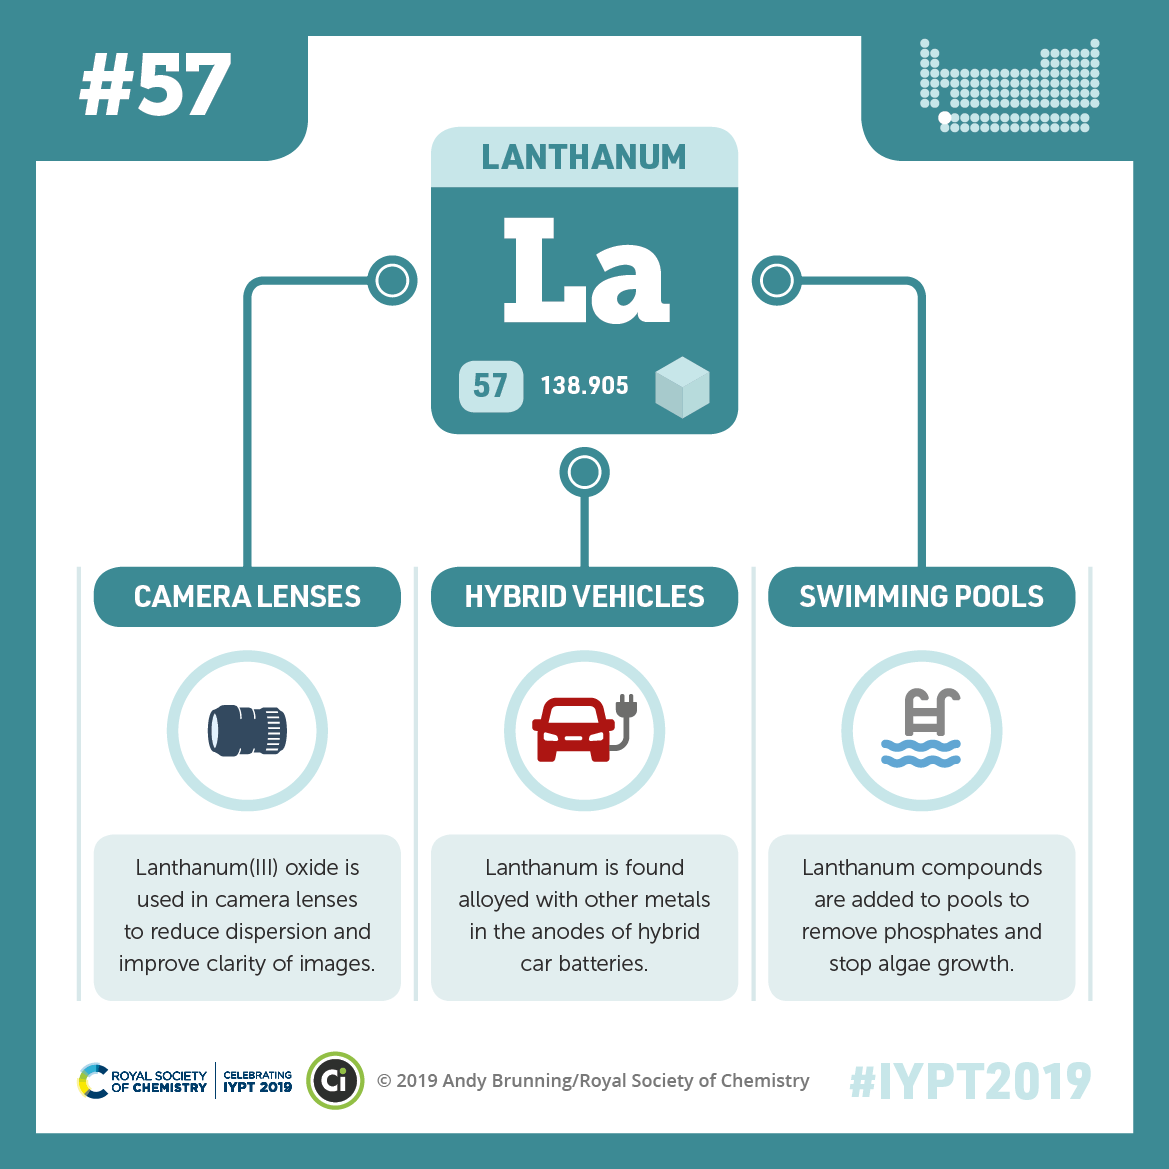 IYPT 2019 Elements 057: Lanthanum: Camera lenses, hybrid vehicles, and swimming pools